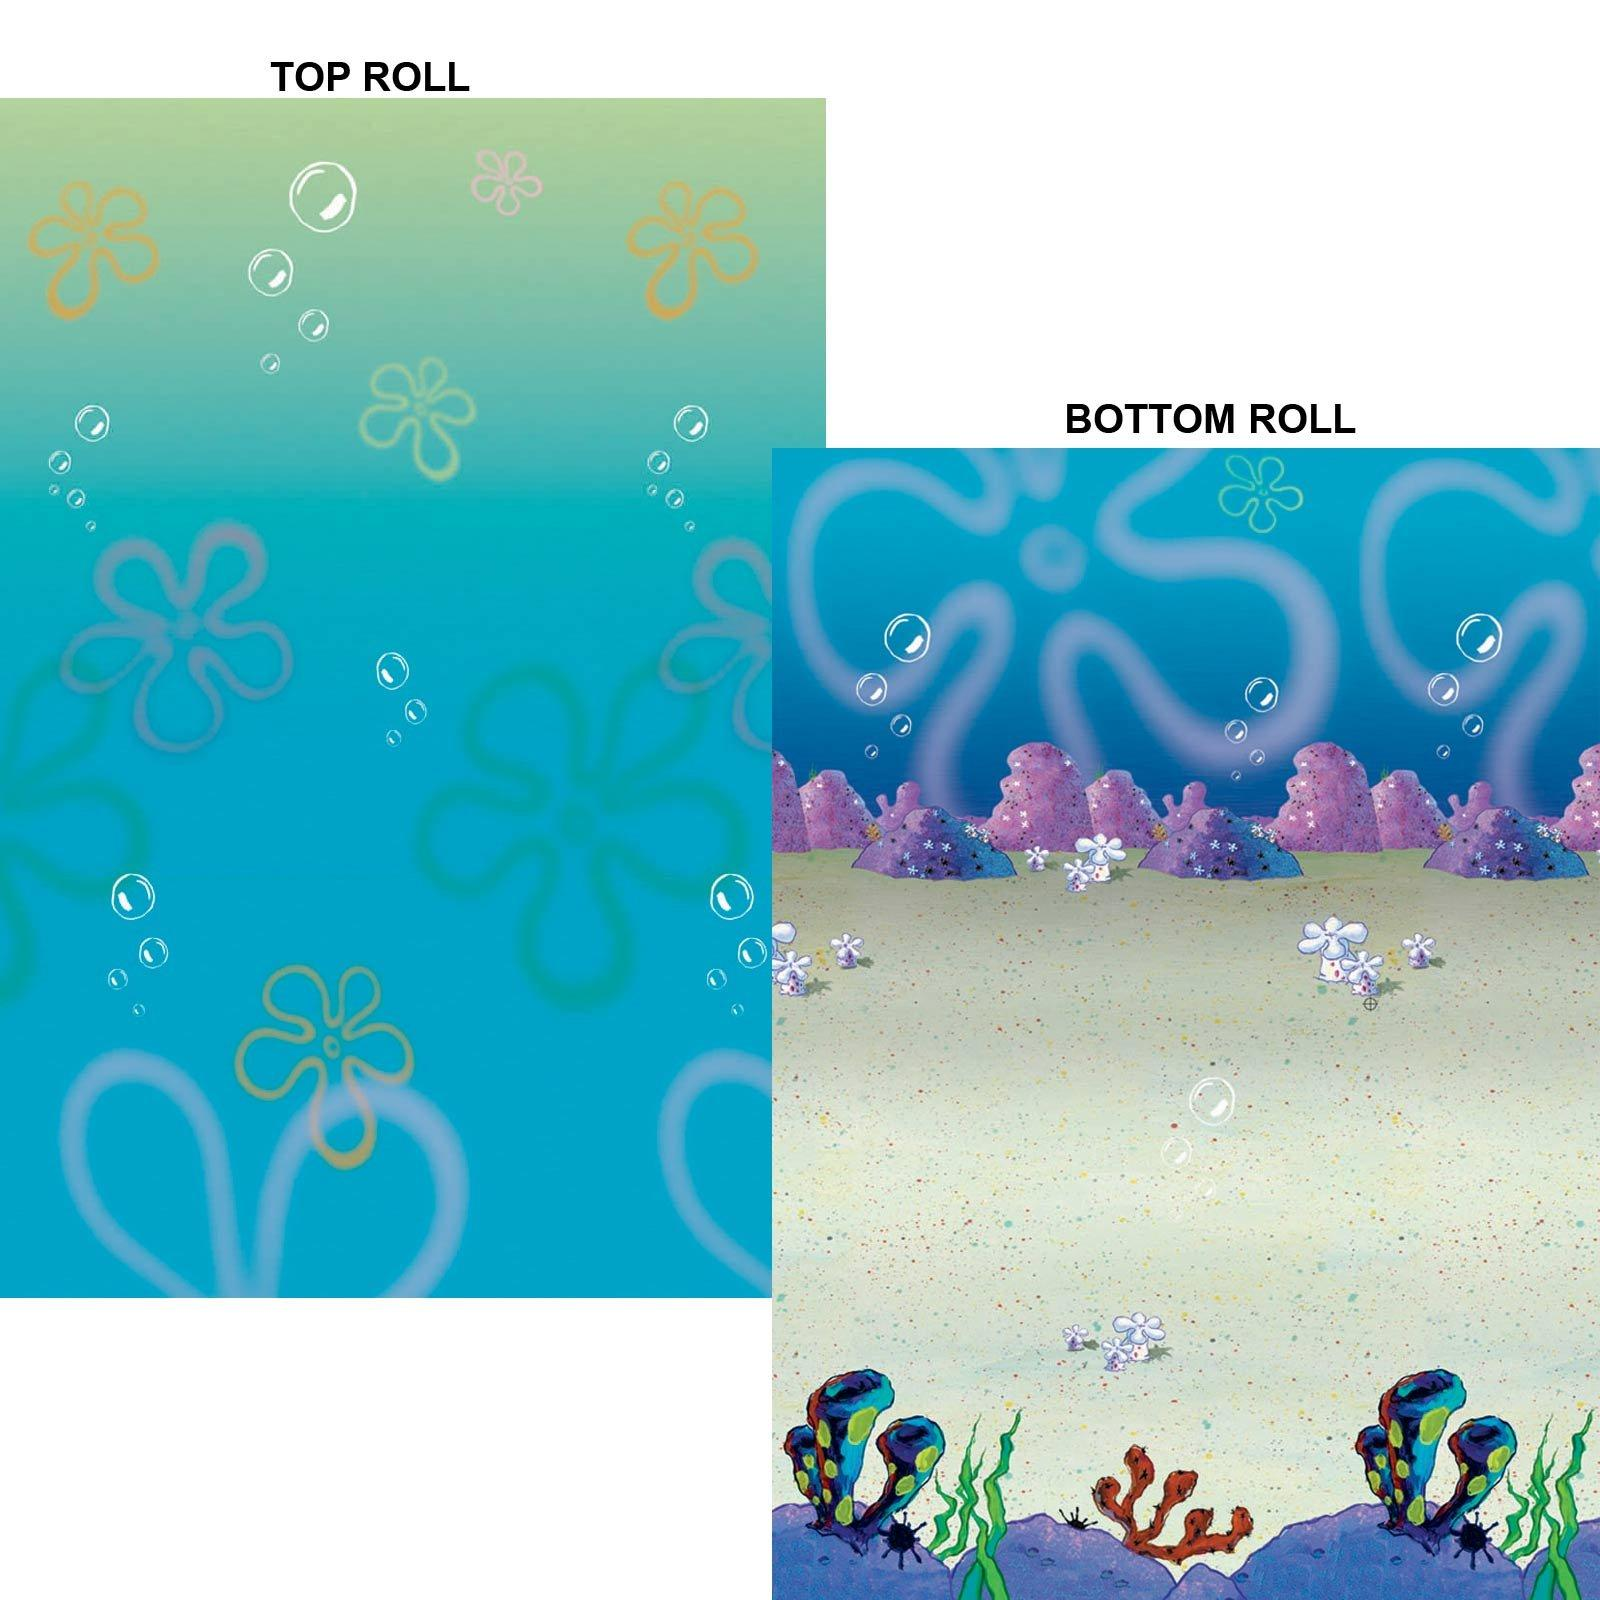 Spongebob Aquarium Background - 1000+ Aquarium Ideas